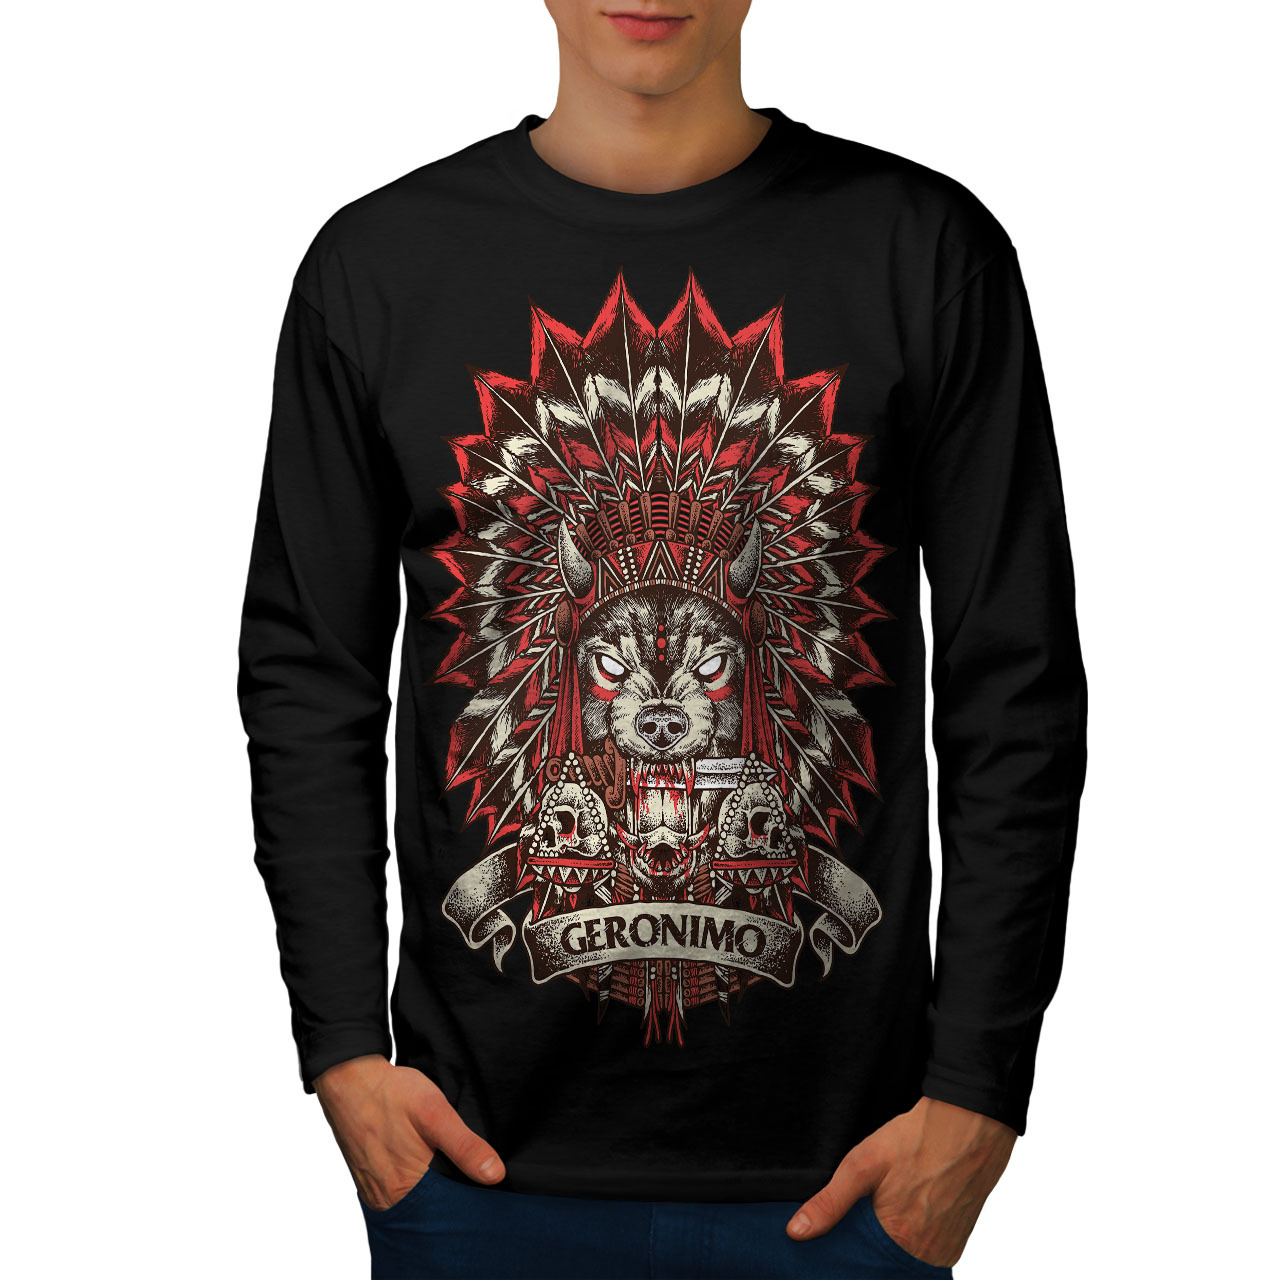 da9f558e297 D2903xmxsxbxmain. D2903xmxsxbxmain. Previous. Geronimo Skull Horror Tee Men  Long Sleeve T-shirt · Geronimo Skull ...